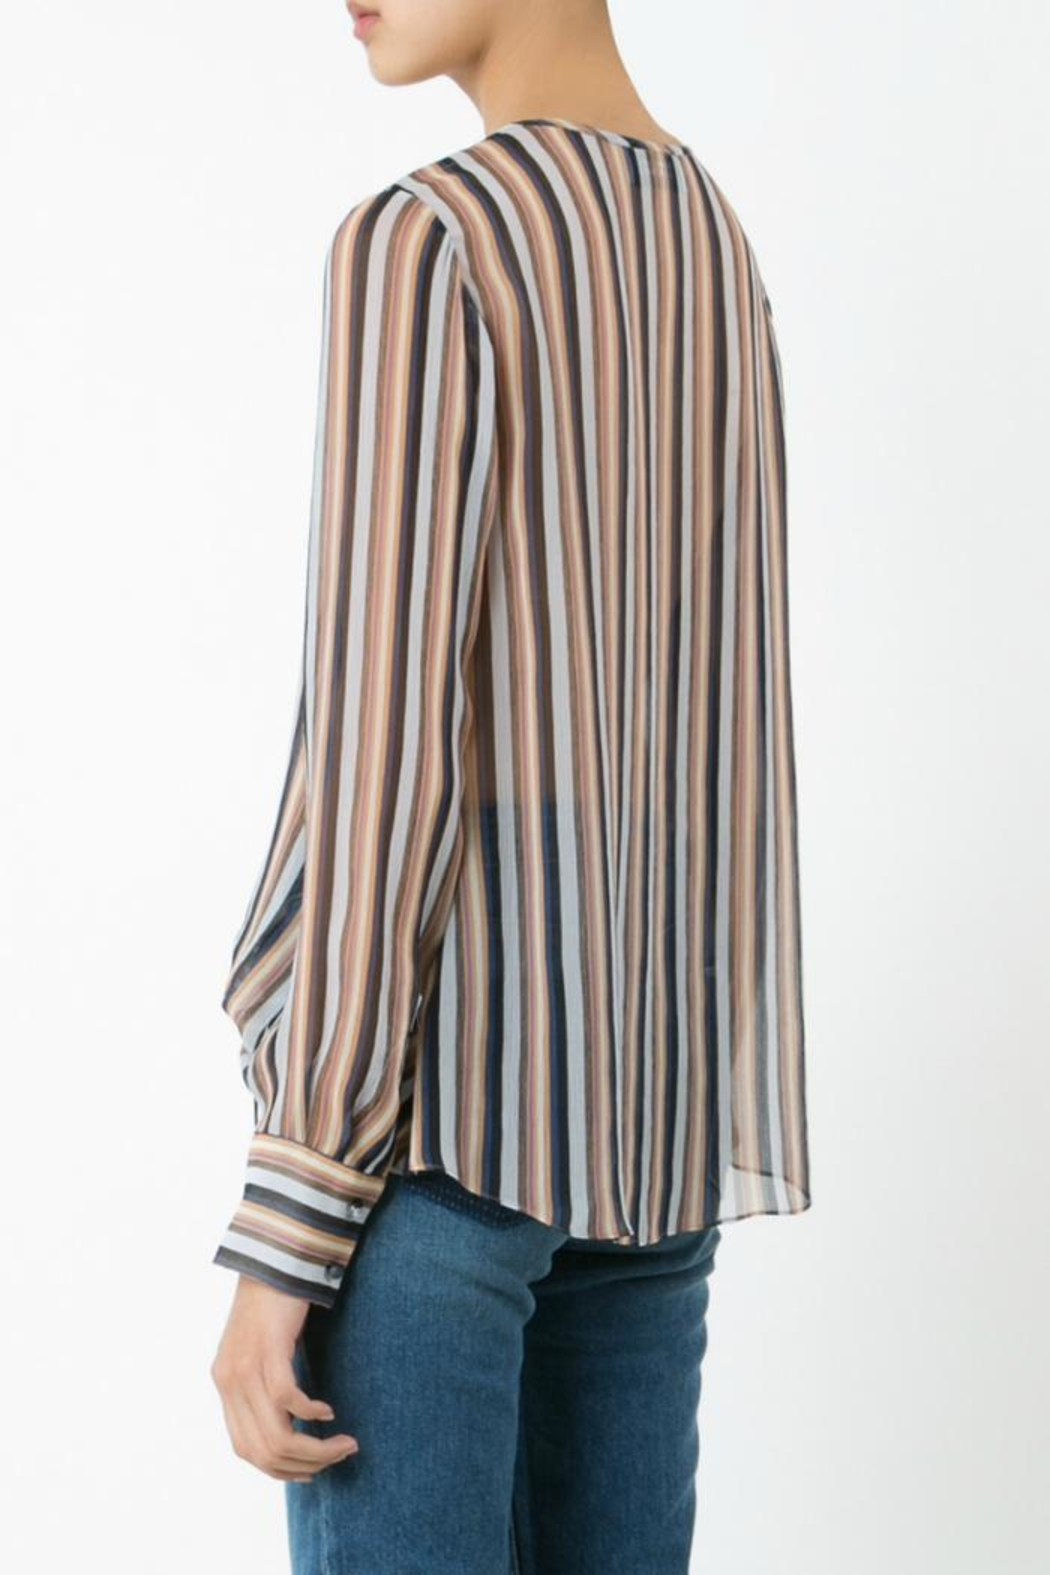 Derek Lam 10 Crosby Lace Up Blouse - Front Full Image